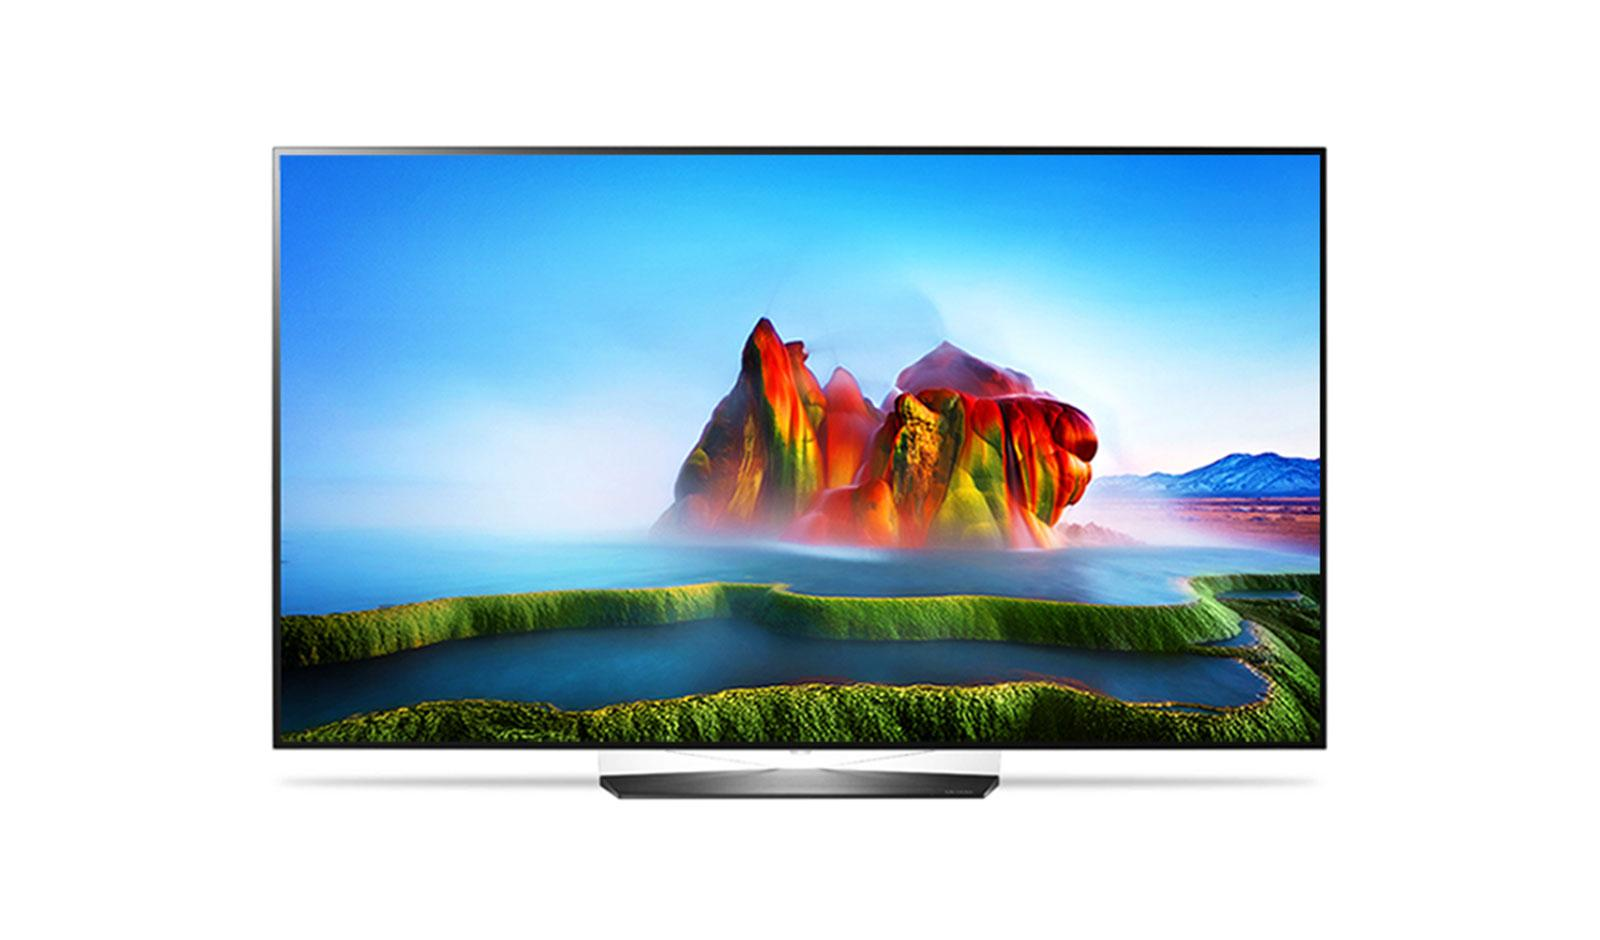 LG 32 Inches LED TV 32LB5820 Price in Bangladesh